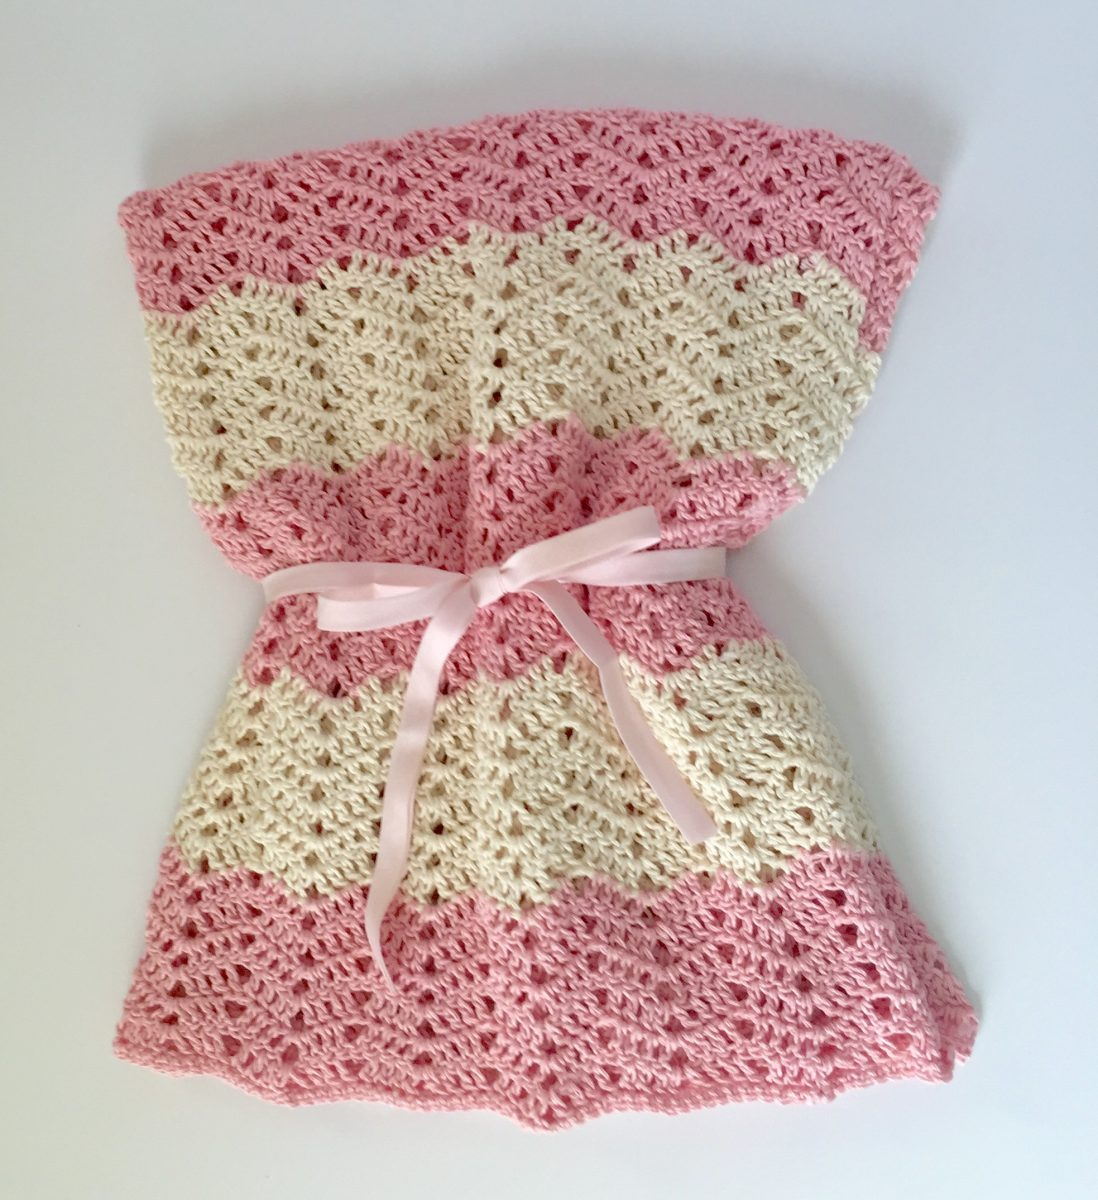 Peek a Boo Baby Blanket crochet pattern by little monkeys designs in cream and pink